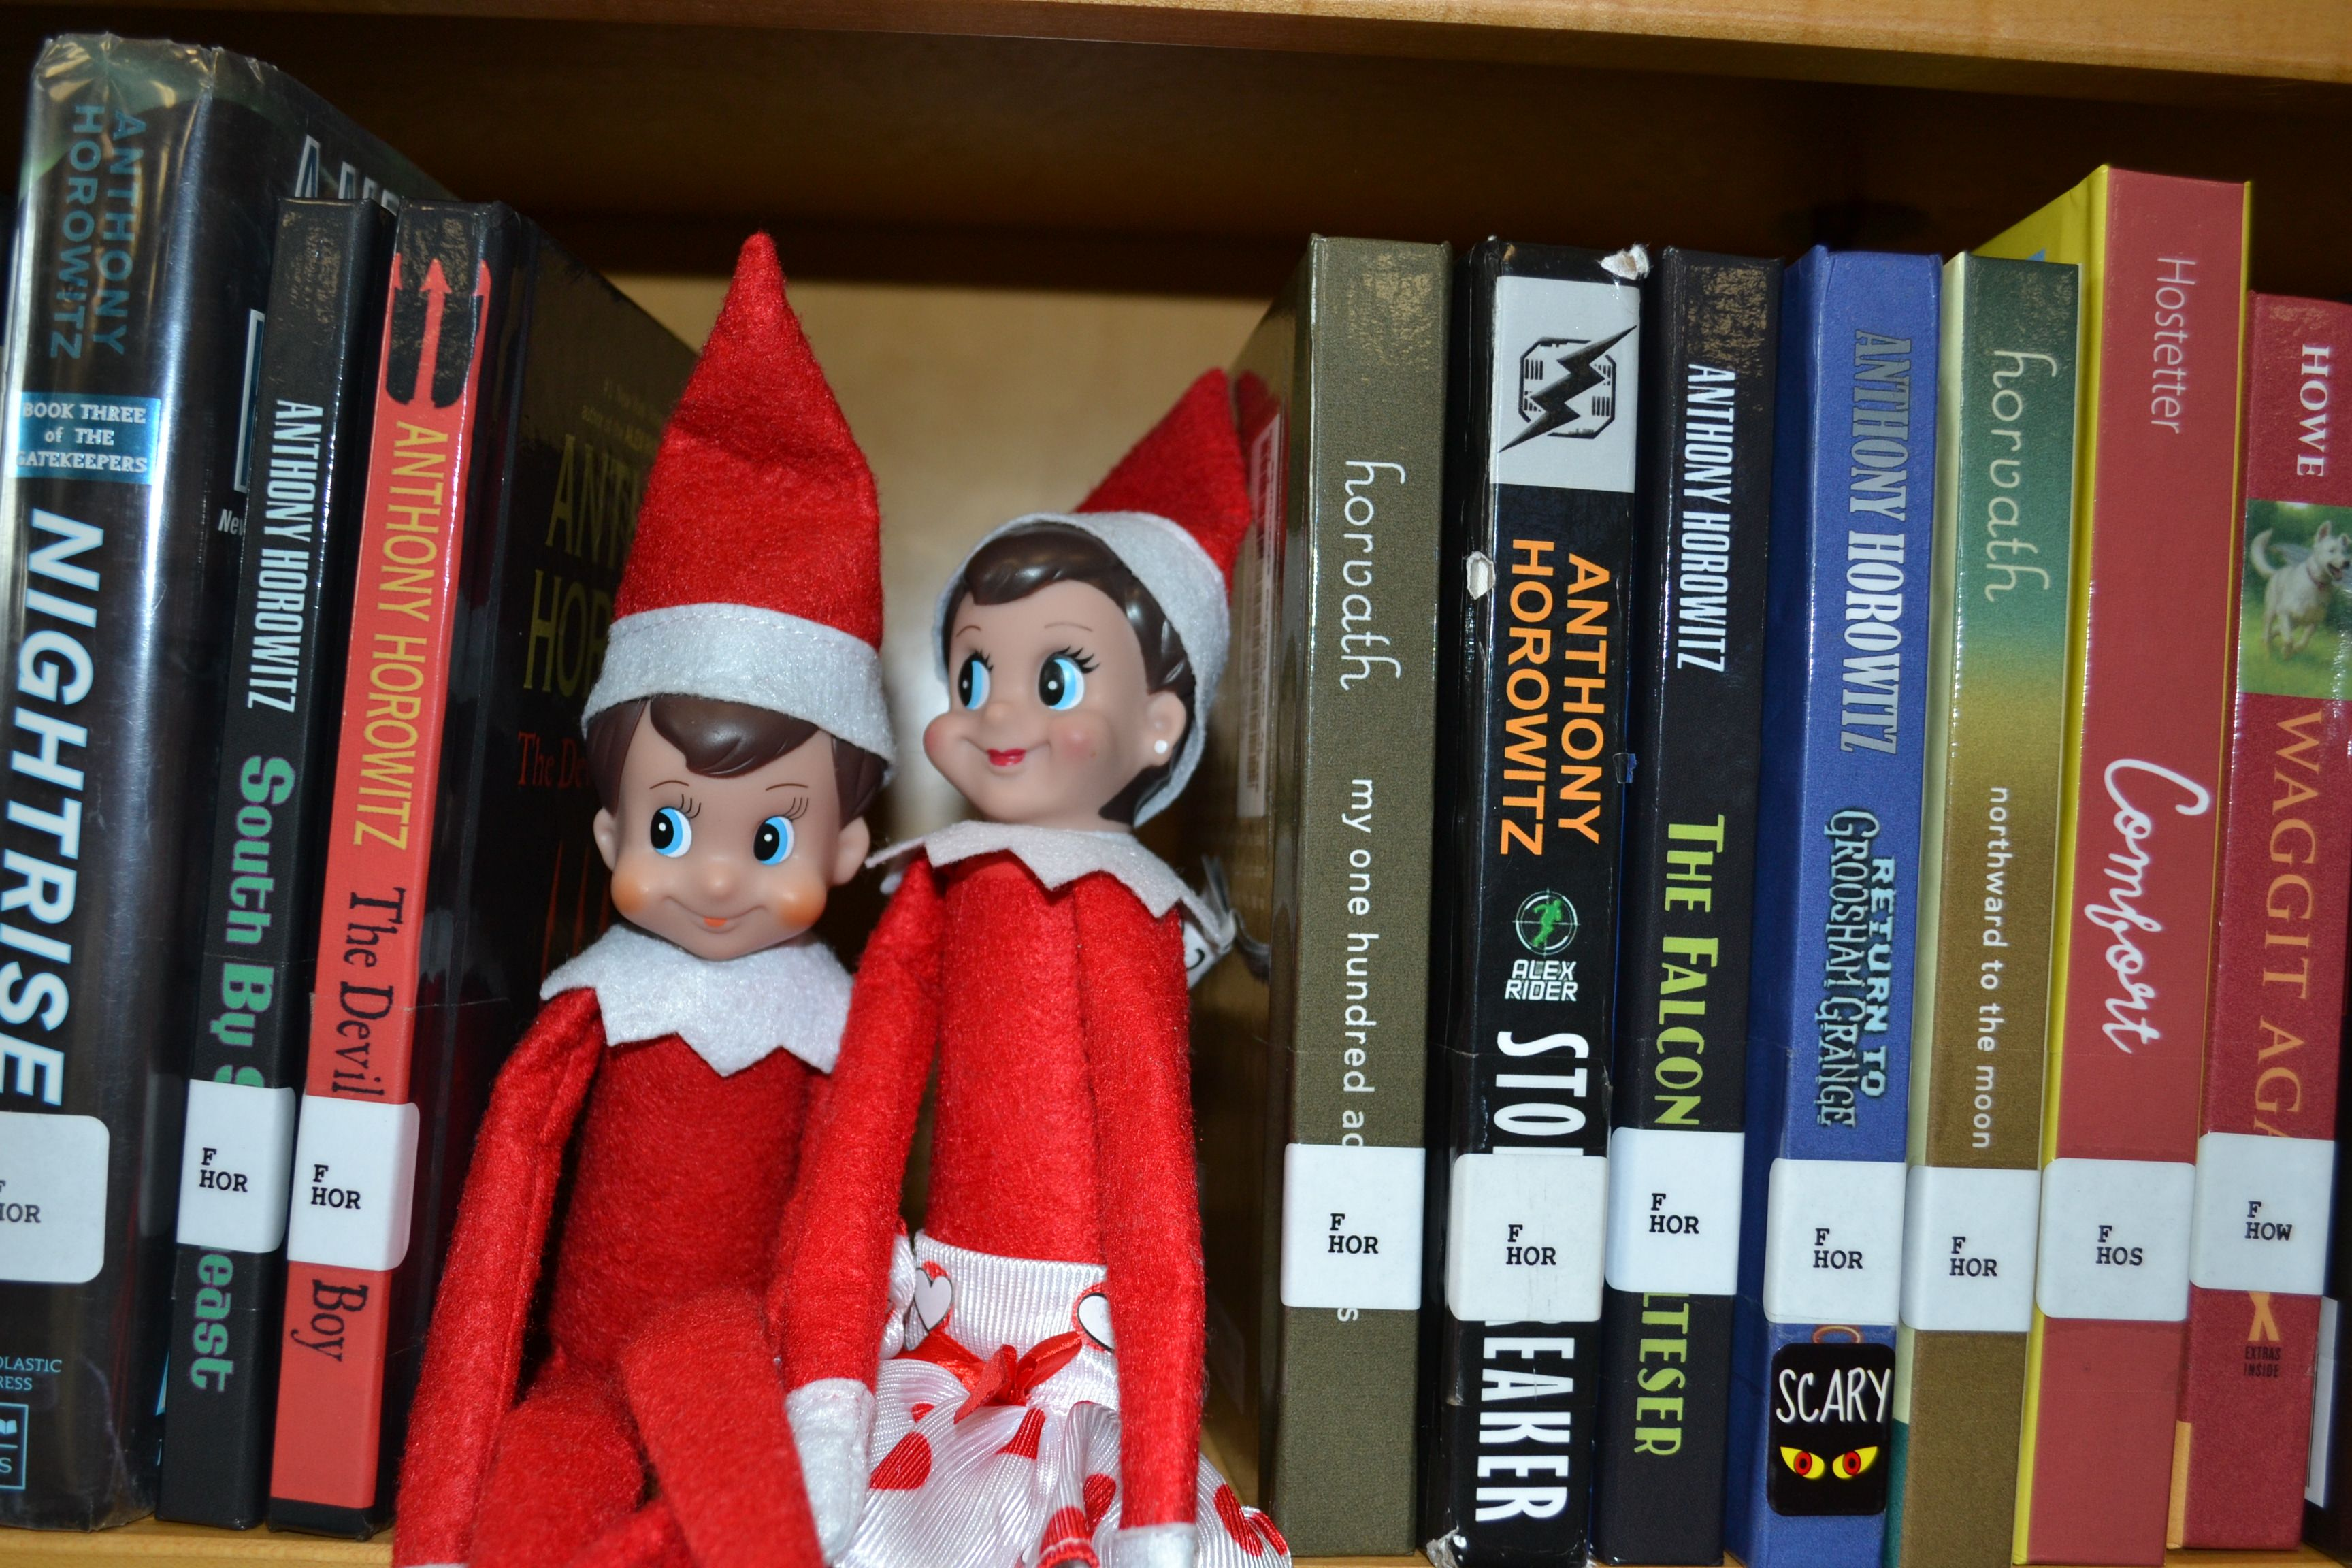 Use The Elf On The Shelf For The Library We Would Have A Clue